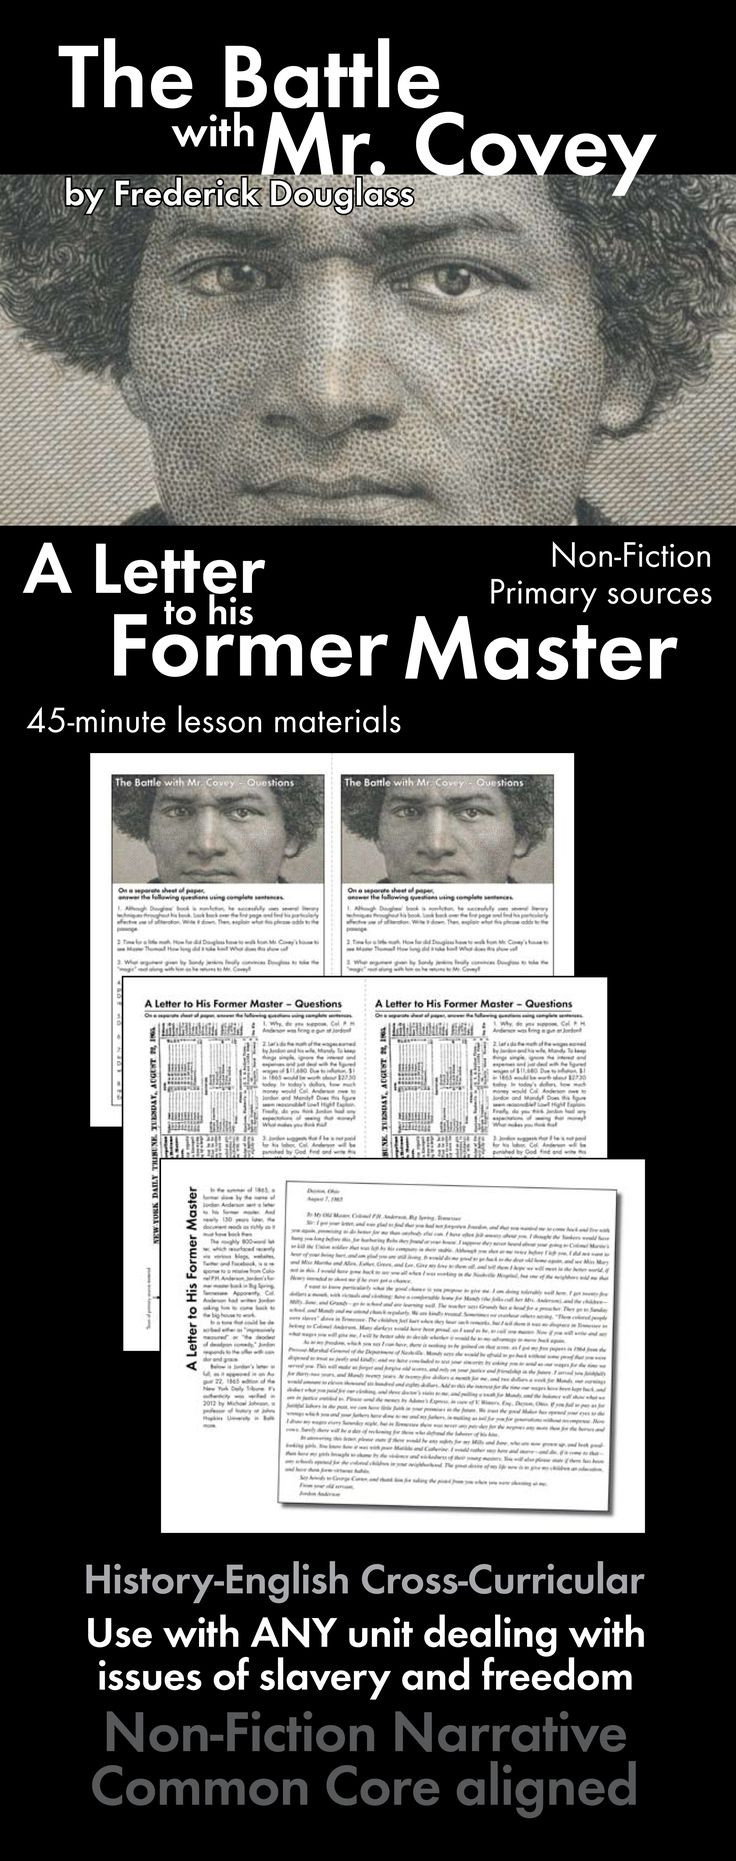 Use this non-fiction activity based on Frederick Douglass' slave experience to enhance your Civil War or novel studies.